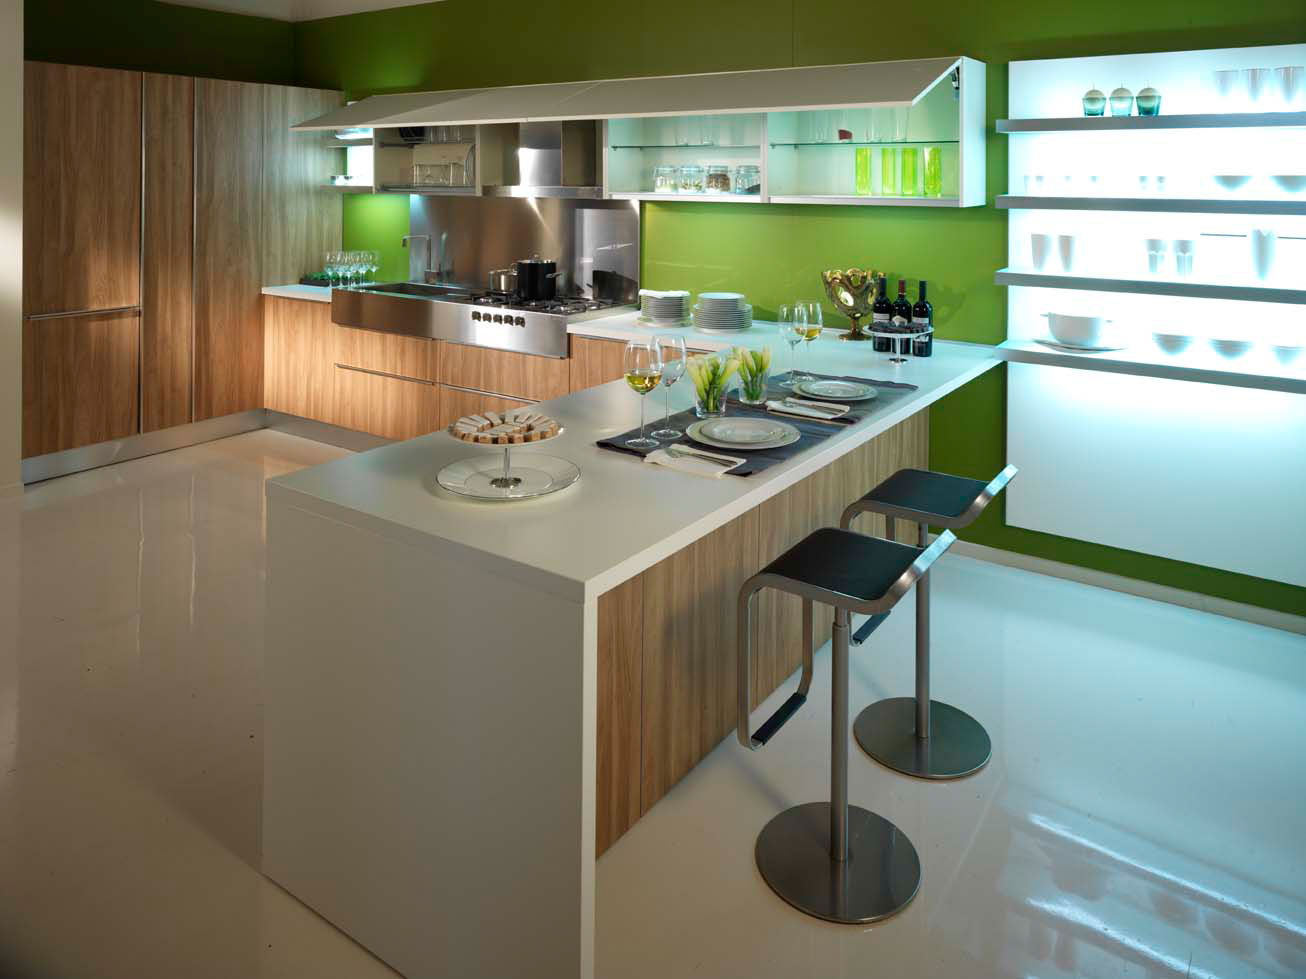 Cuisine pas cher 27 photo de cuisine moderne design for Cuisine de luxe contemporaine